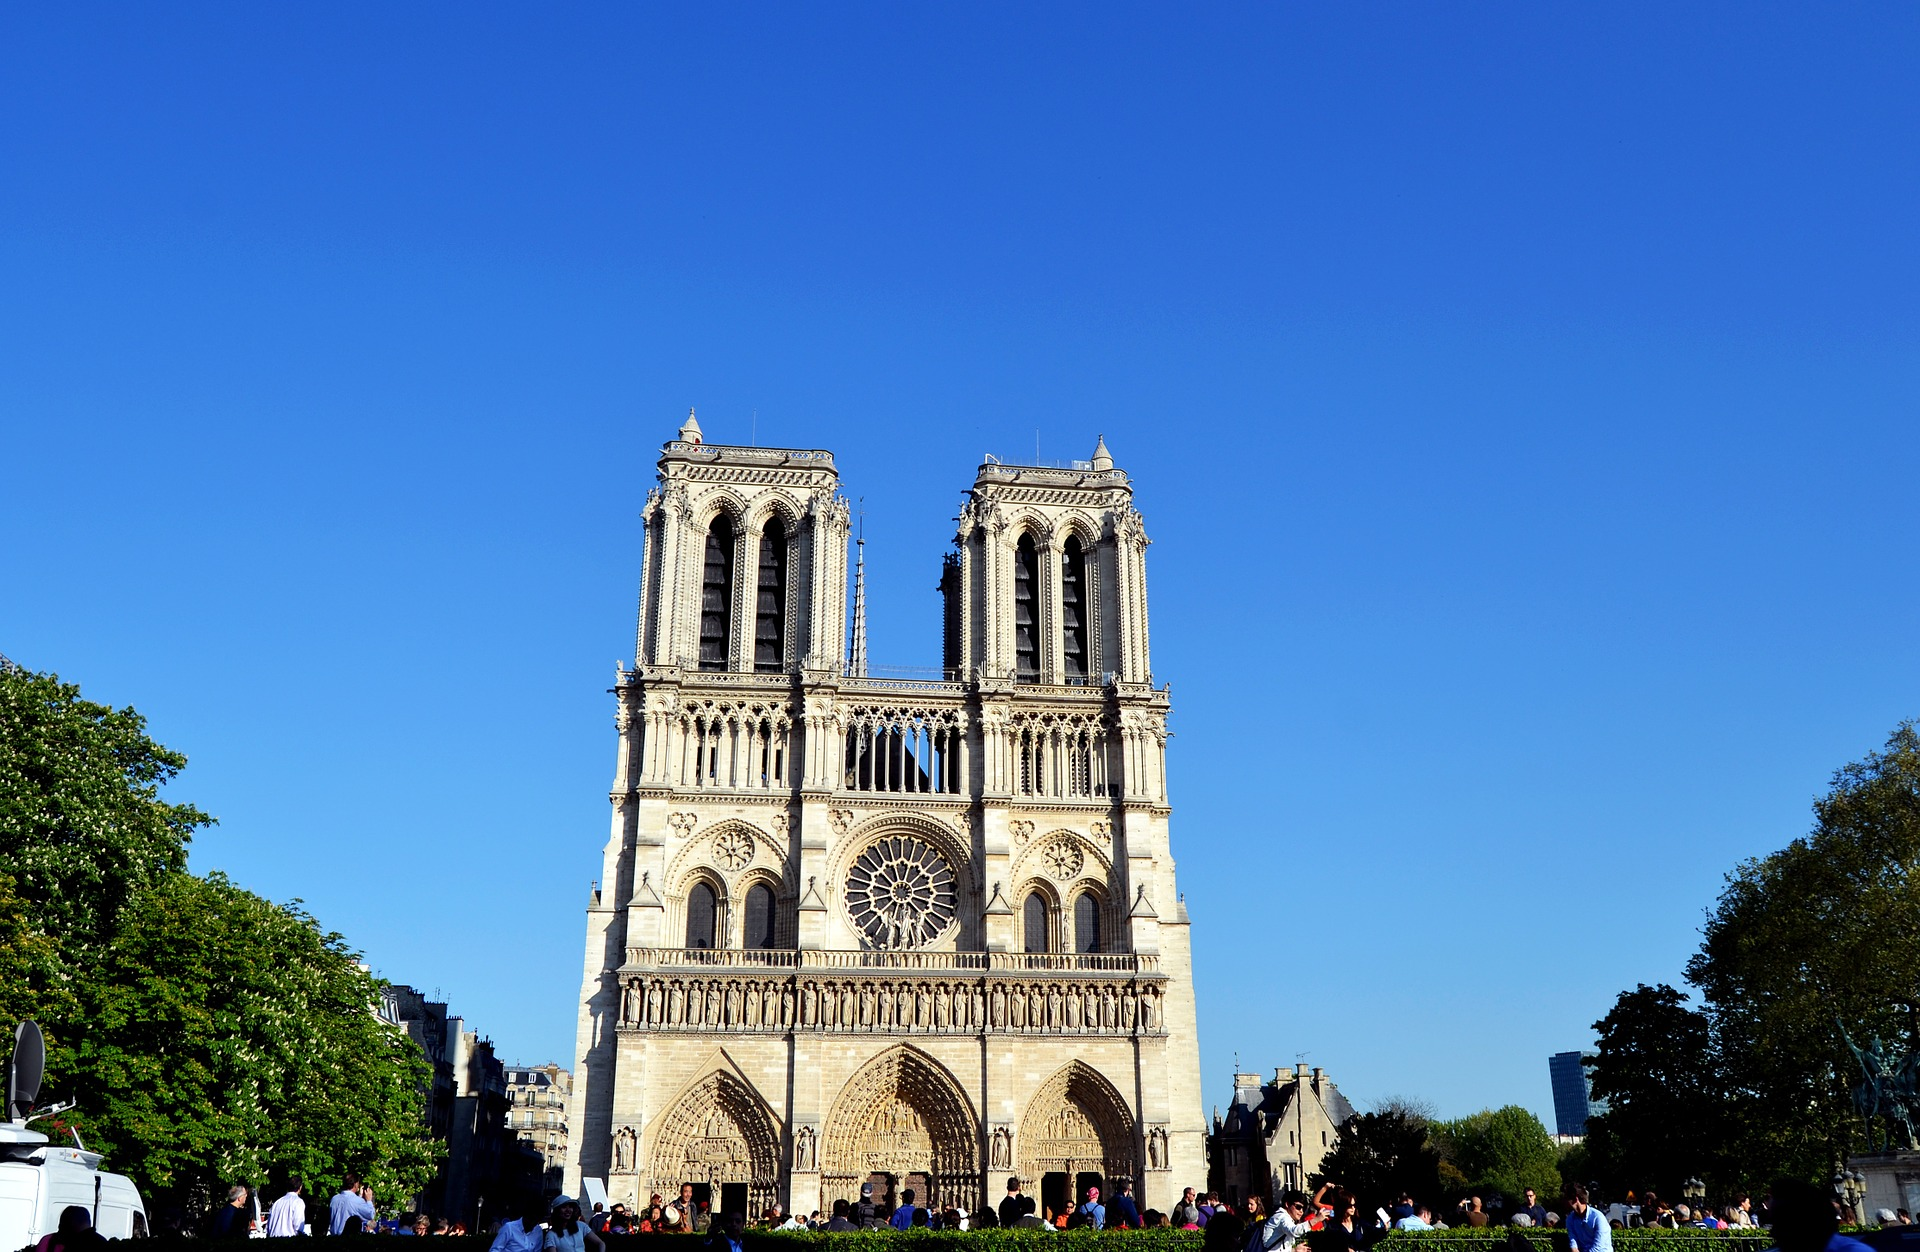 The Notre-Dame de Paris, France